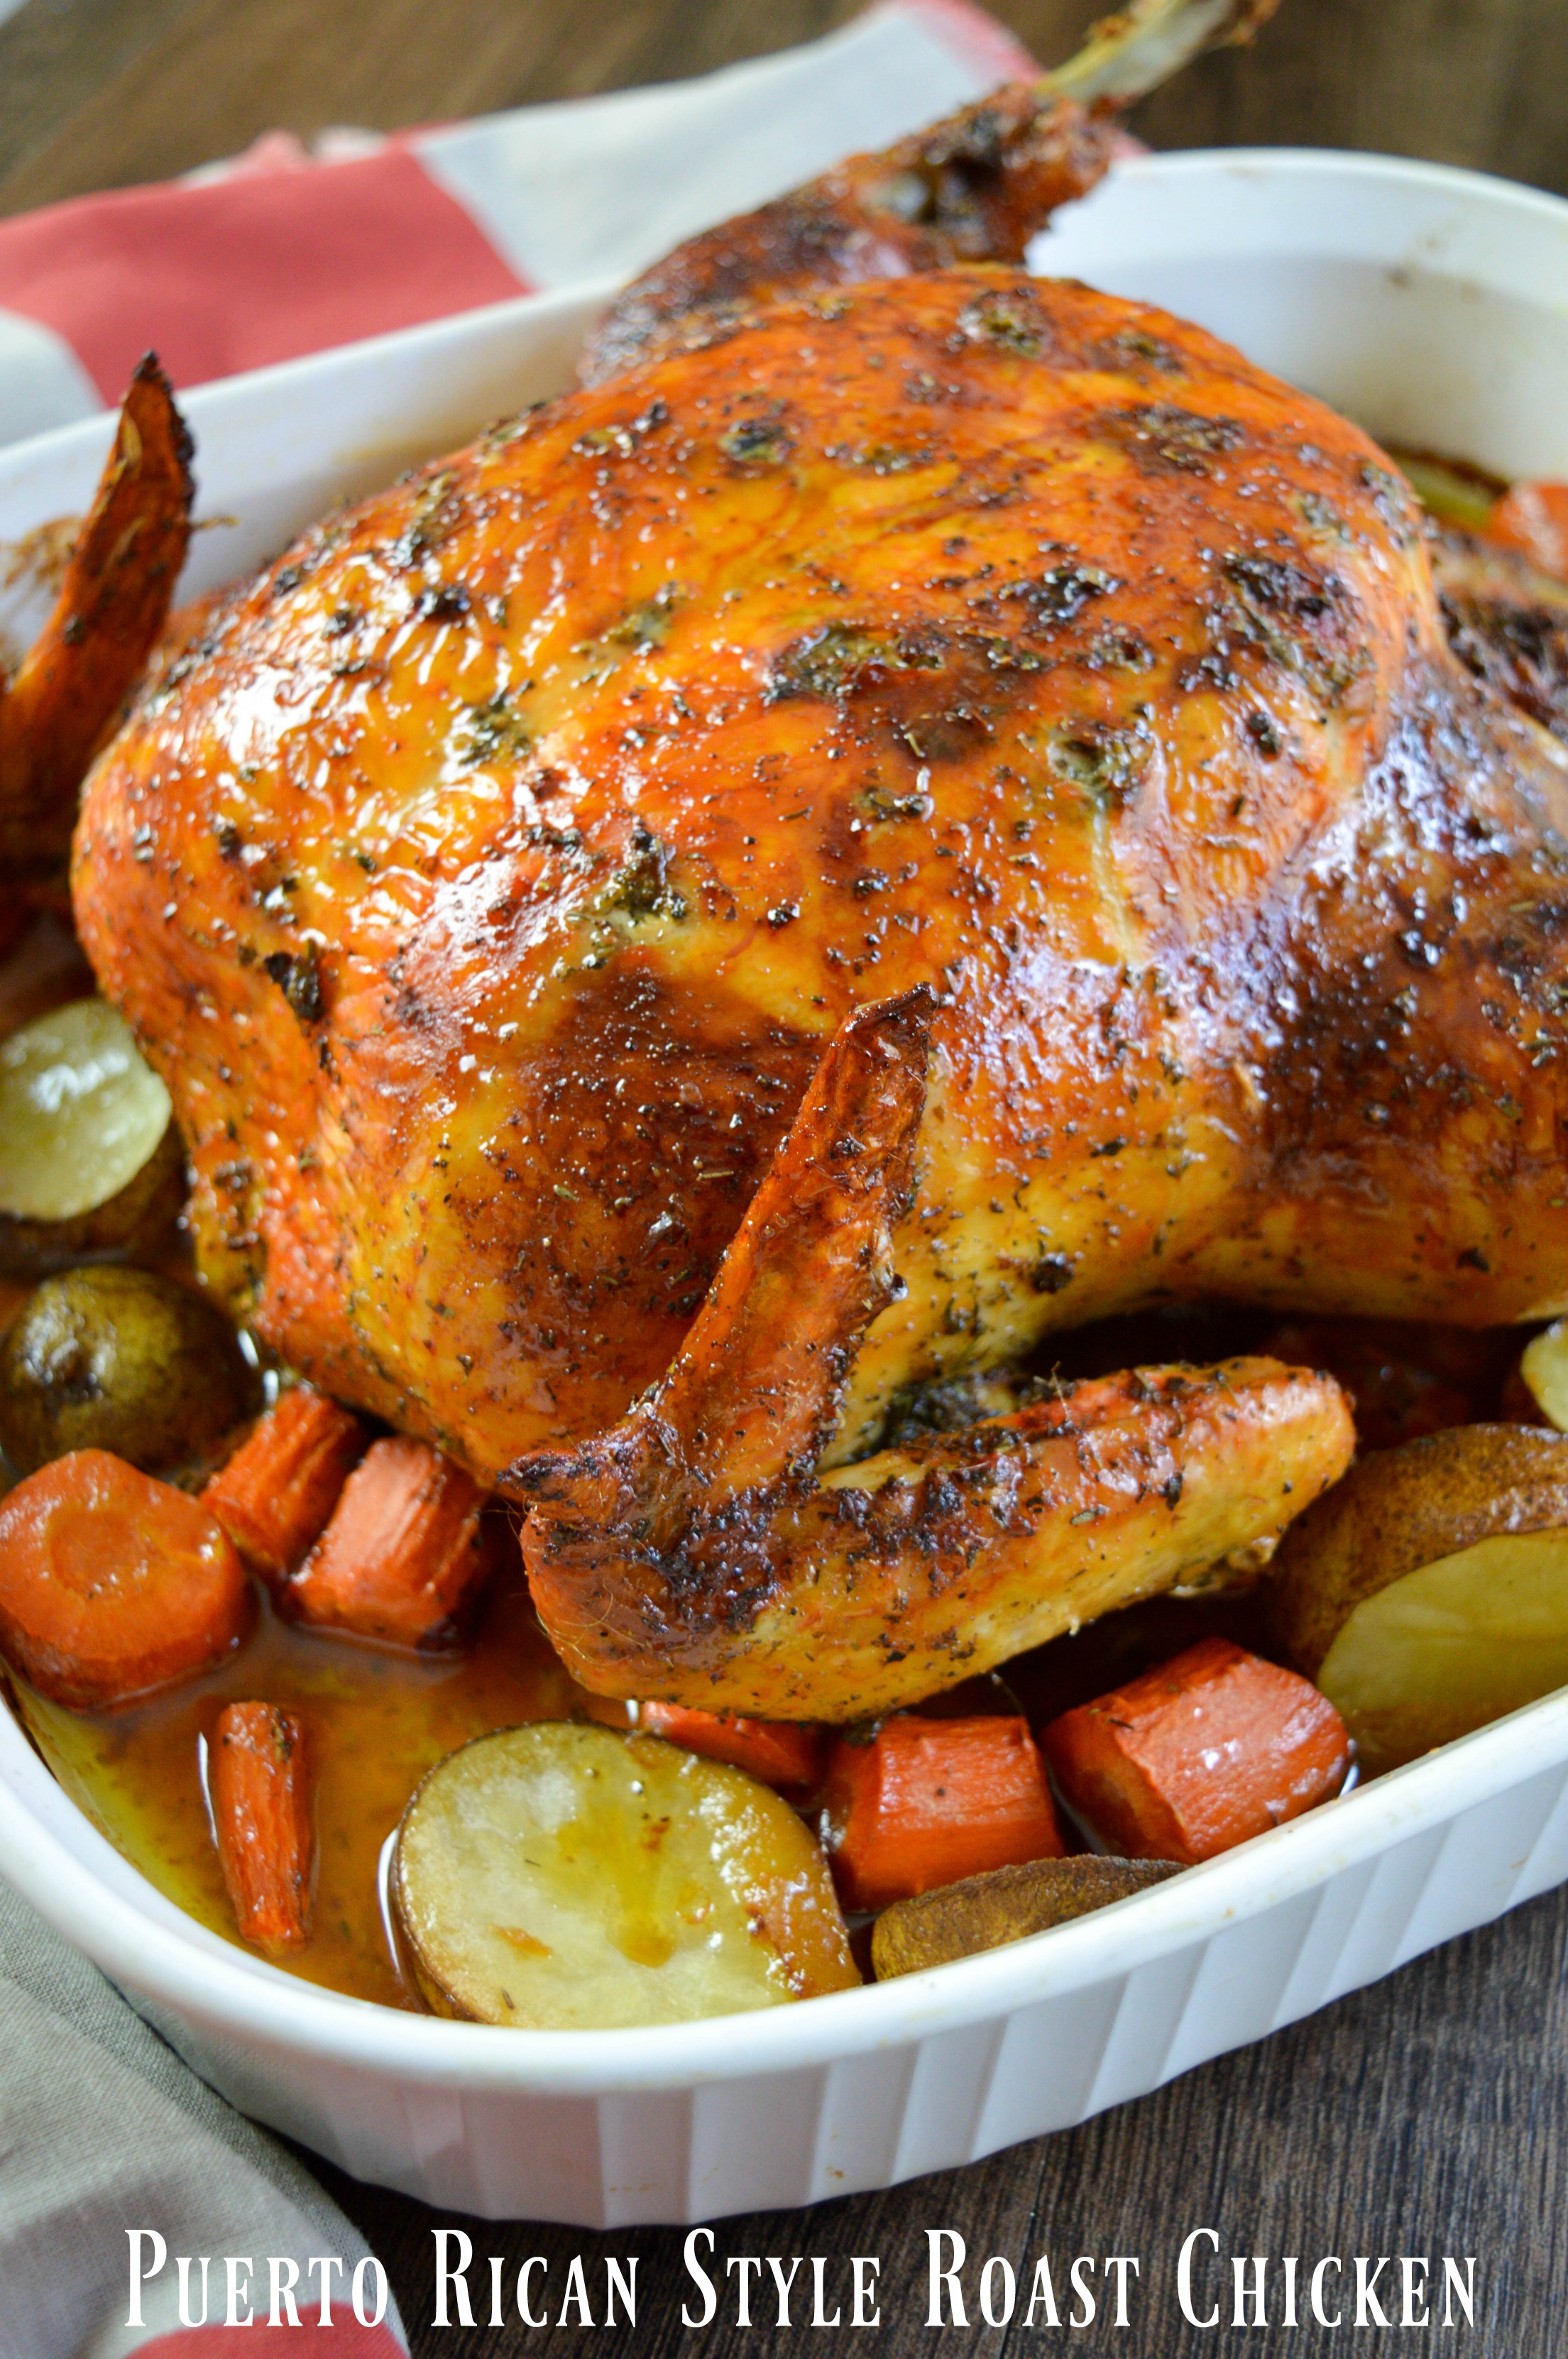 Baking A Whole Chicken  Puerto Rican Style Whole Roasted Chicken Recipe